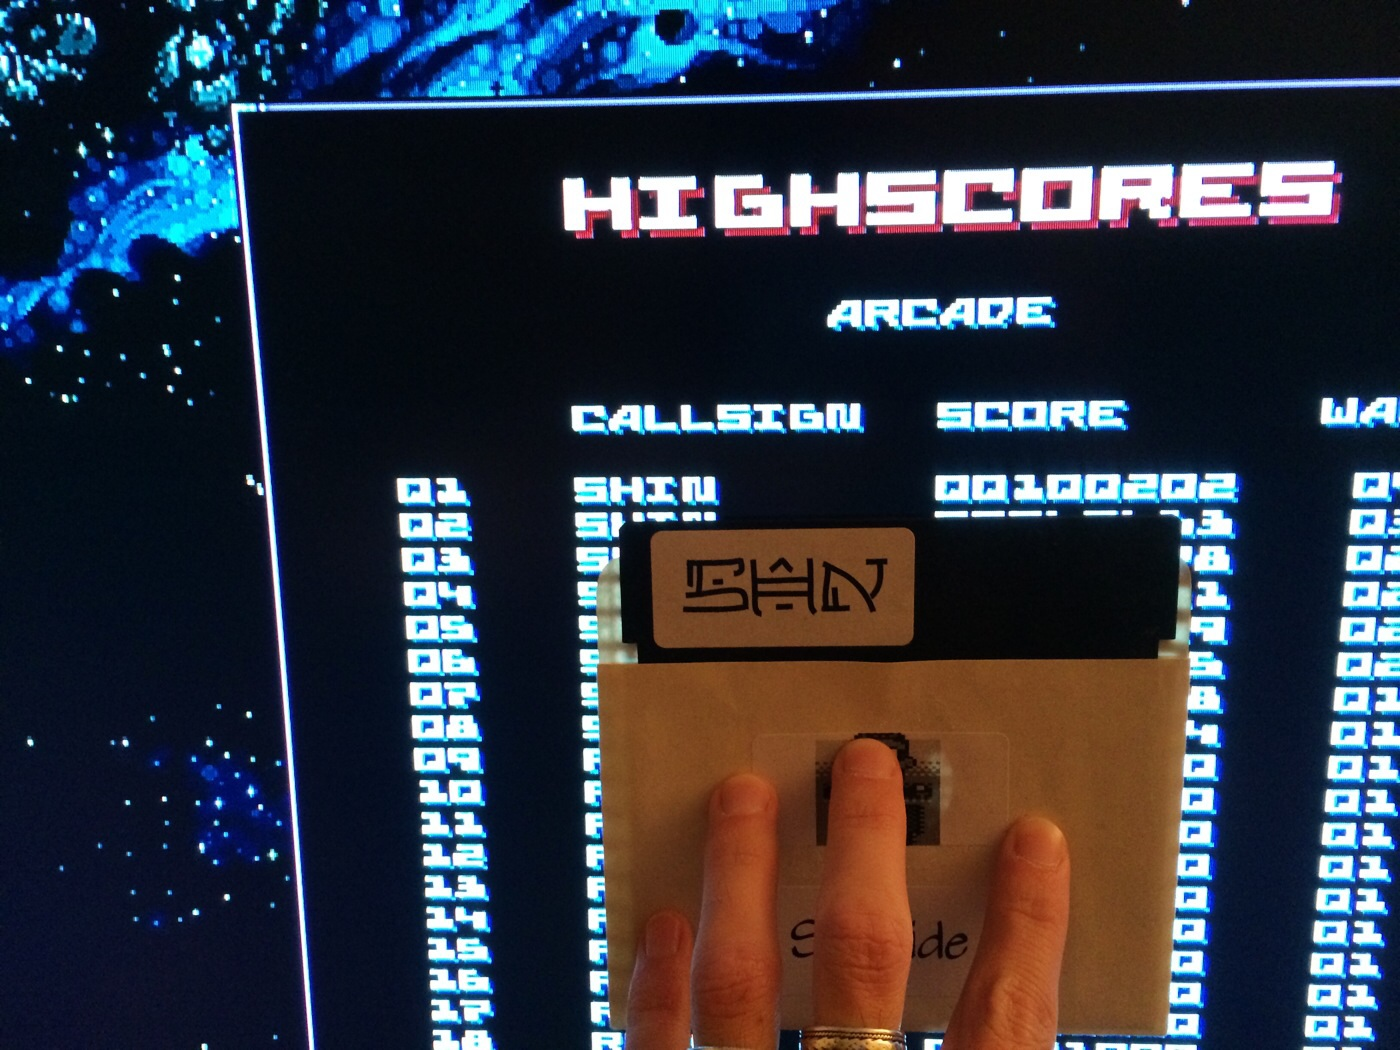 SHiNjide: r0x [Extended Play]: Arcade (Ouya) 100,202 points on 2014-08-26 16:43:12